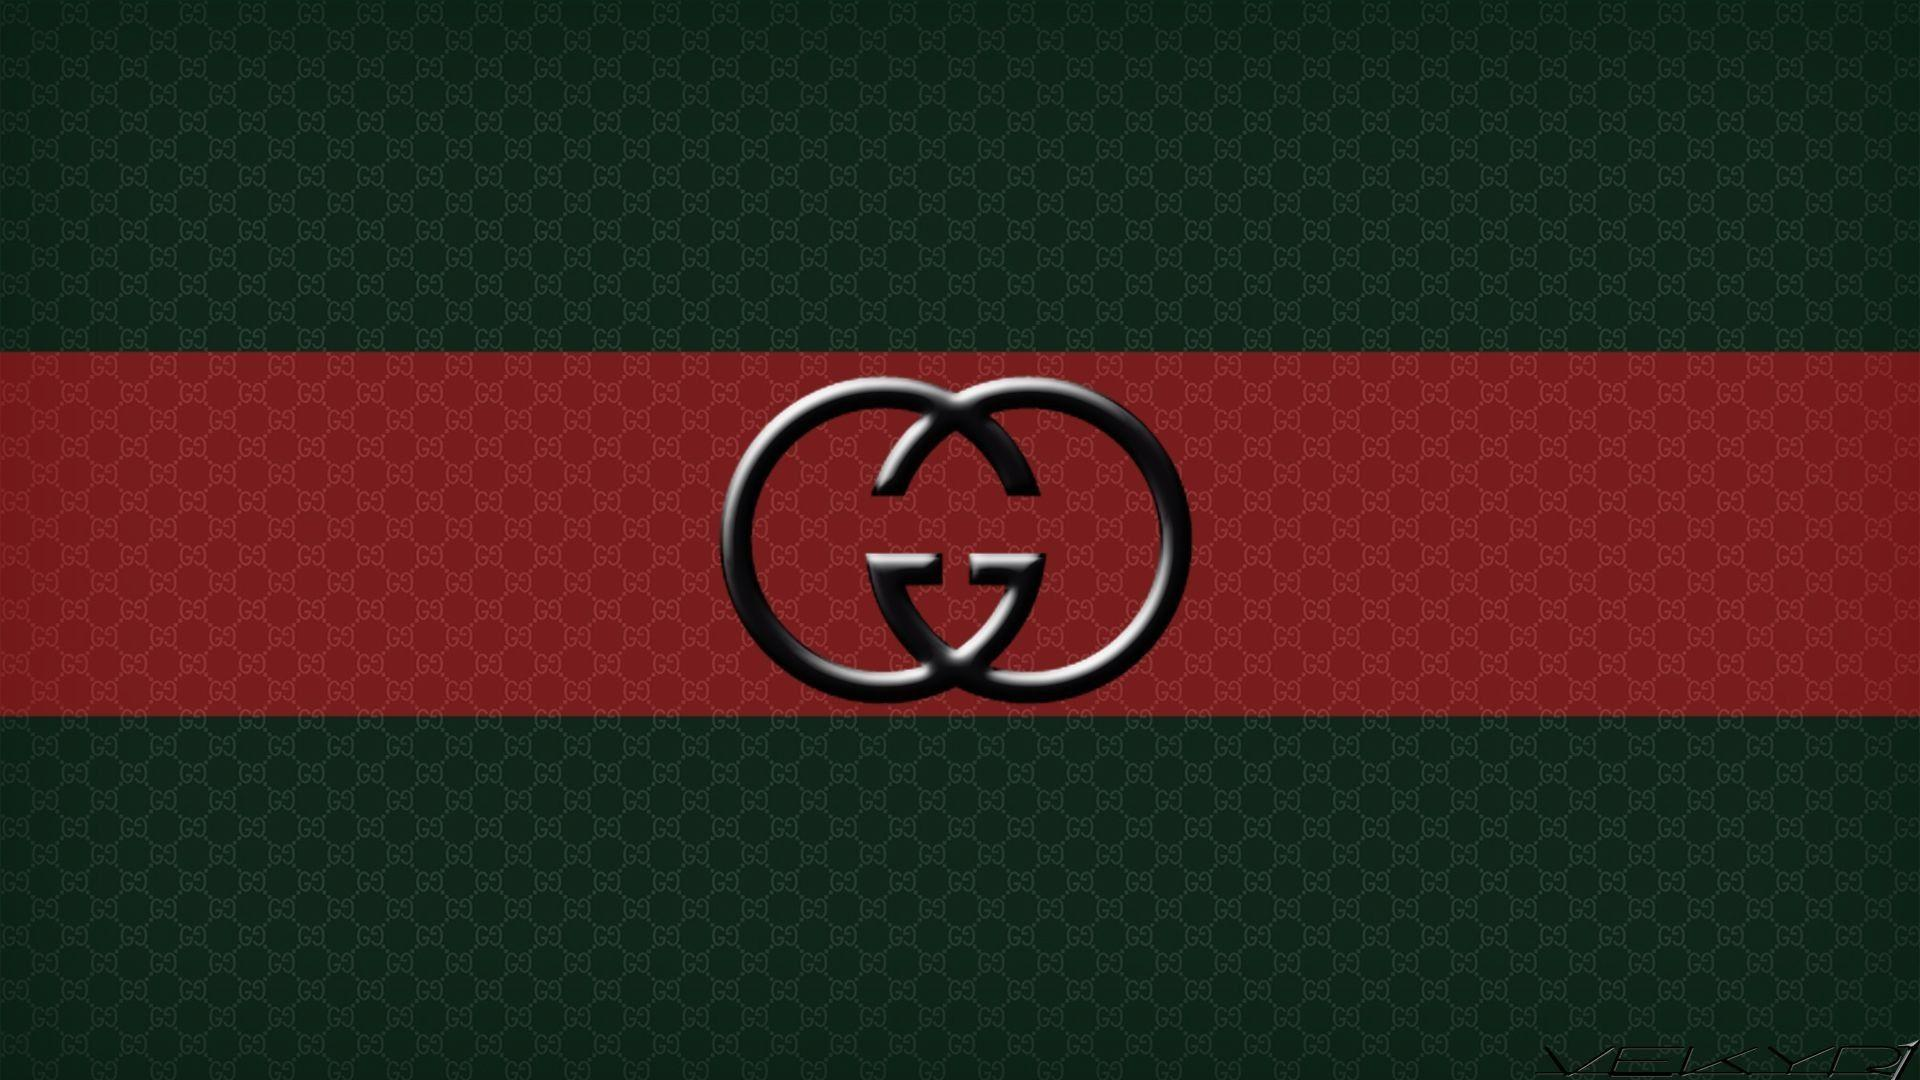 Gucci wallpapers ·① Download free amazing backgrounds for desktop